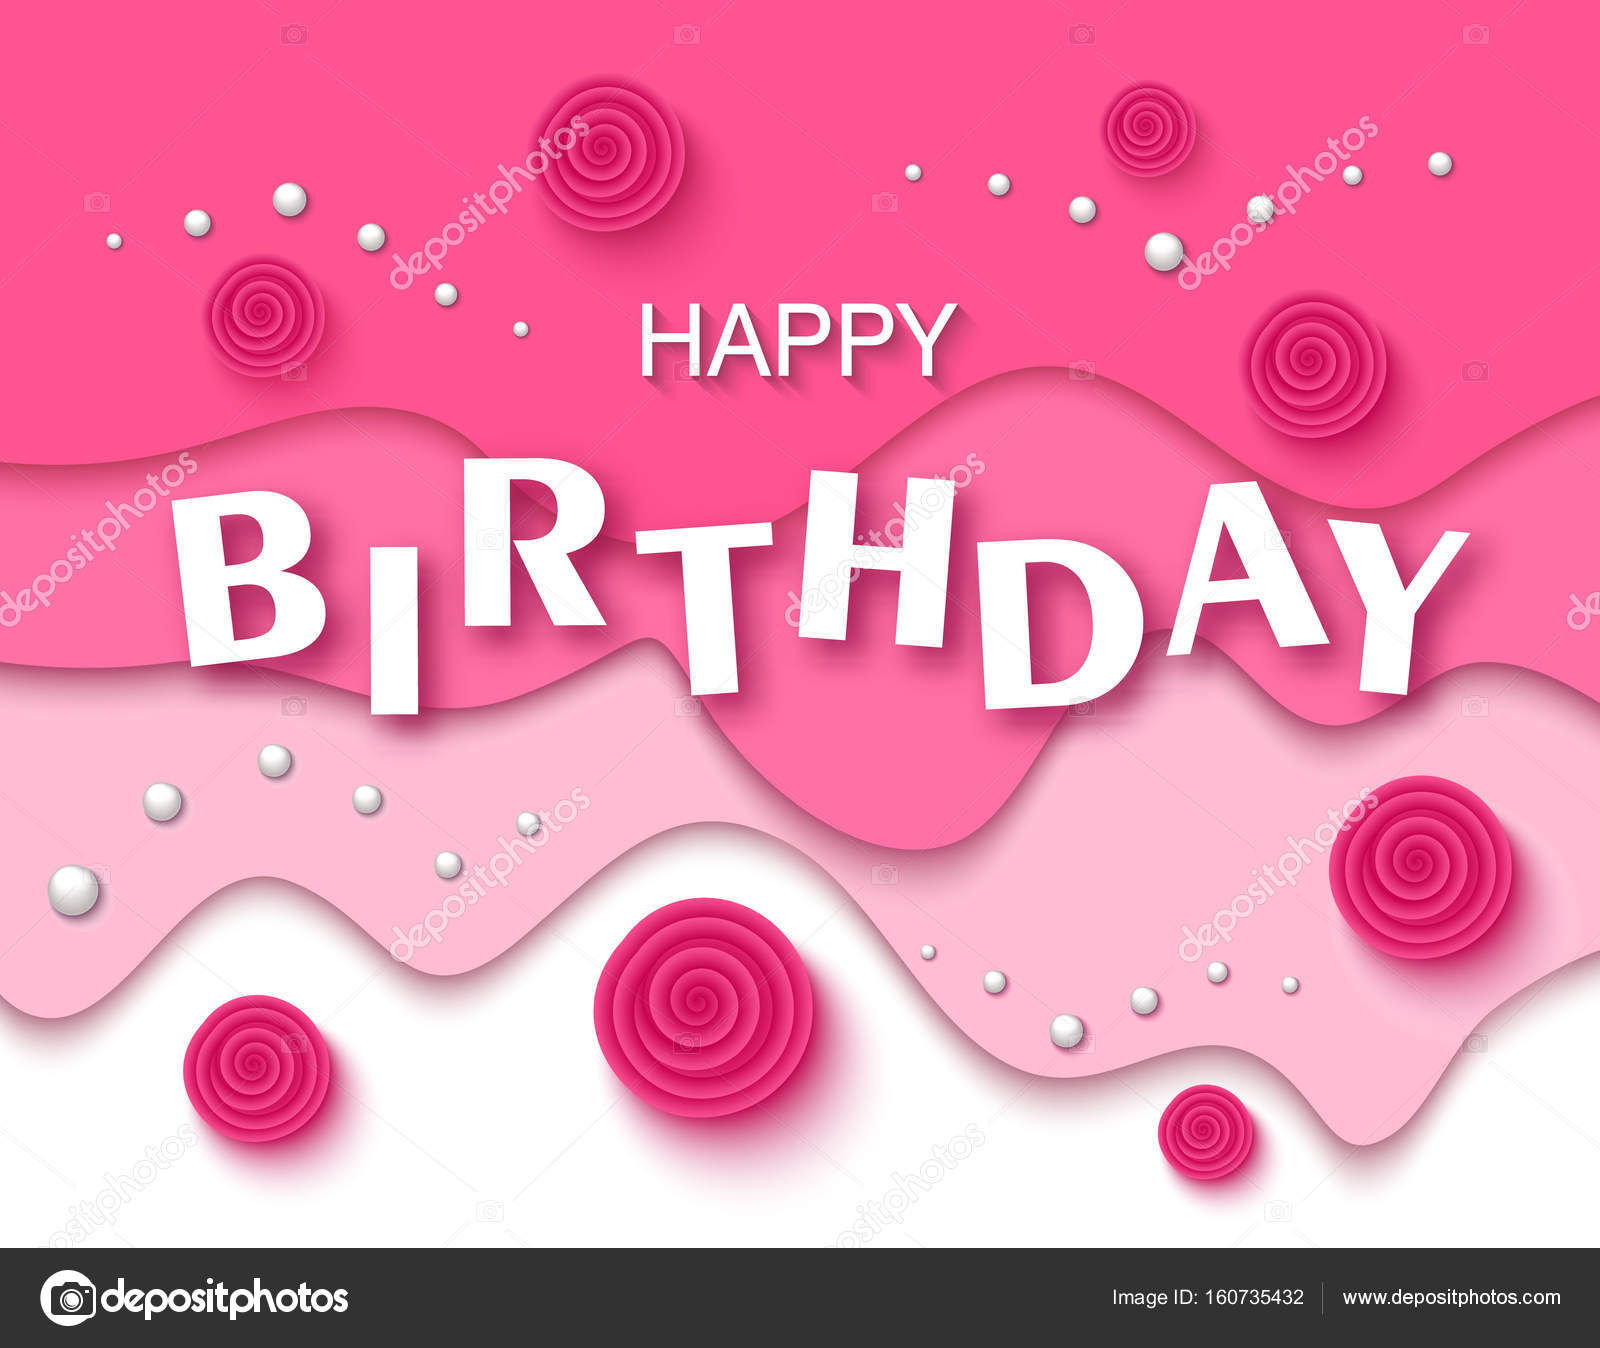 Happy birthday greeting card and party invitation template with happy birthday greeting card and party invitation template with beautiful flowers and pearls vector illustration izmirmasajfo